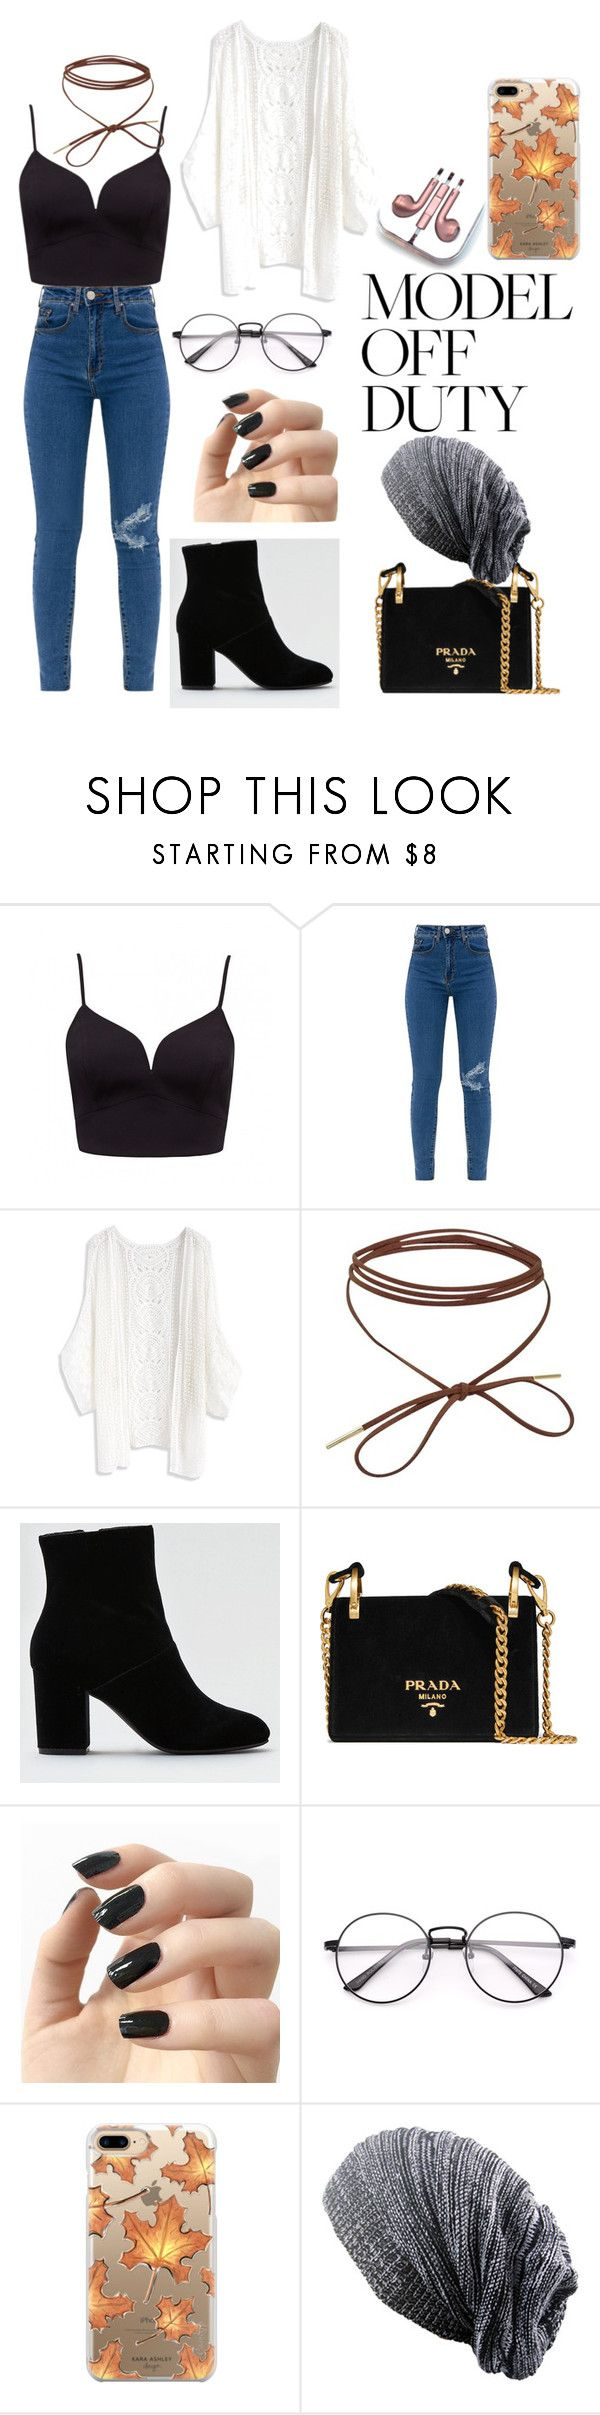 """""""Model off duty"""" by bri007 ❤ liked on Polyvore featuring Chicwish, American Eagle Outfitters, Prada, Incoco, Casetify and PhunkeeTree"""